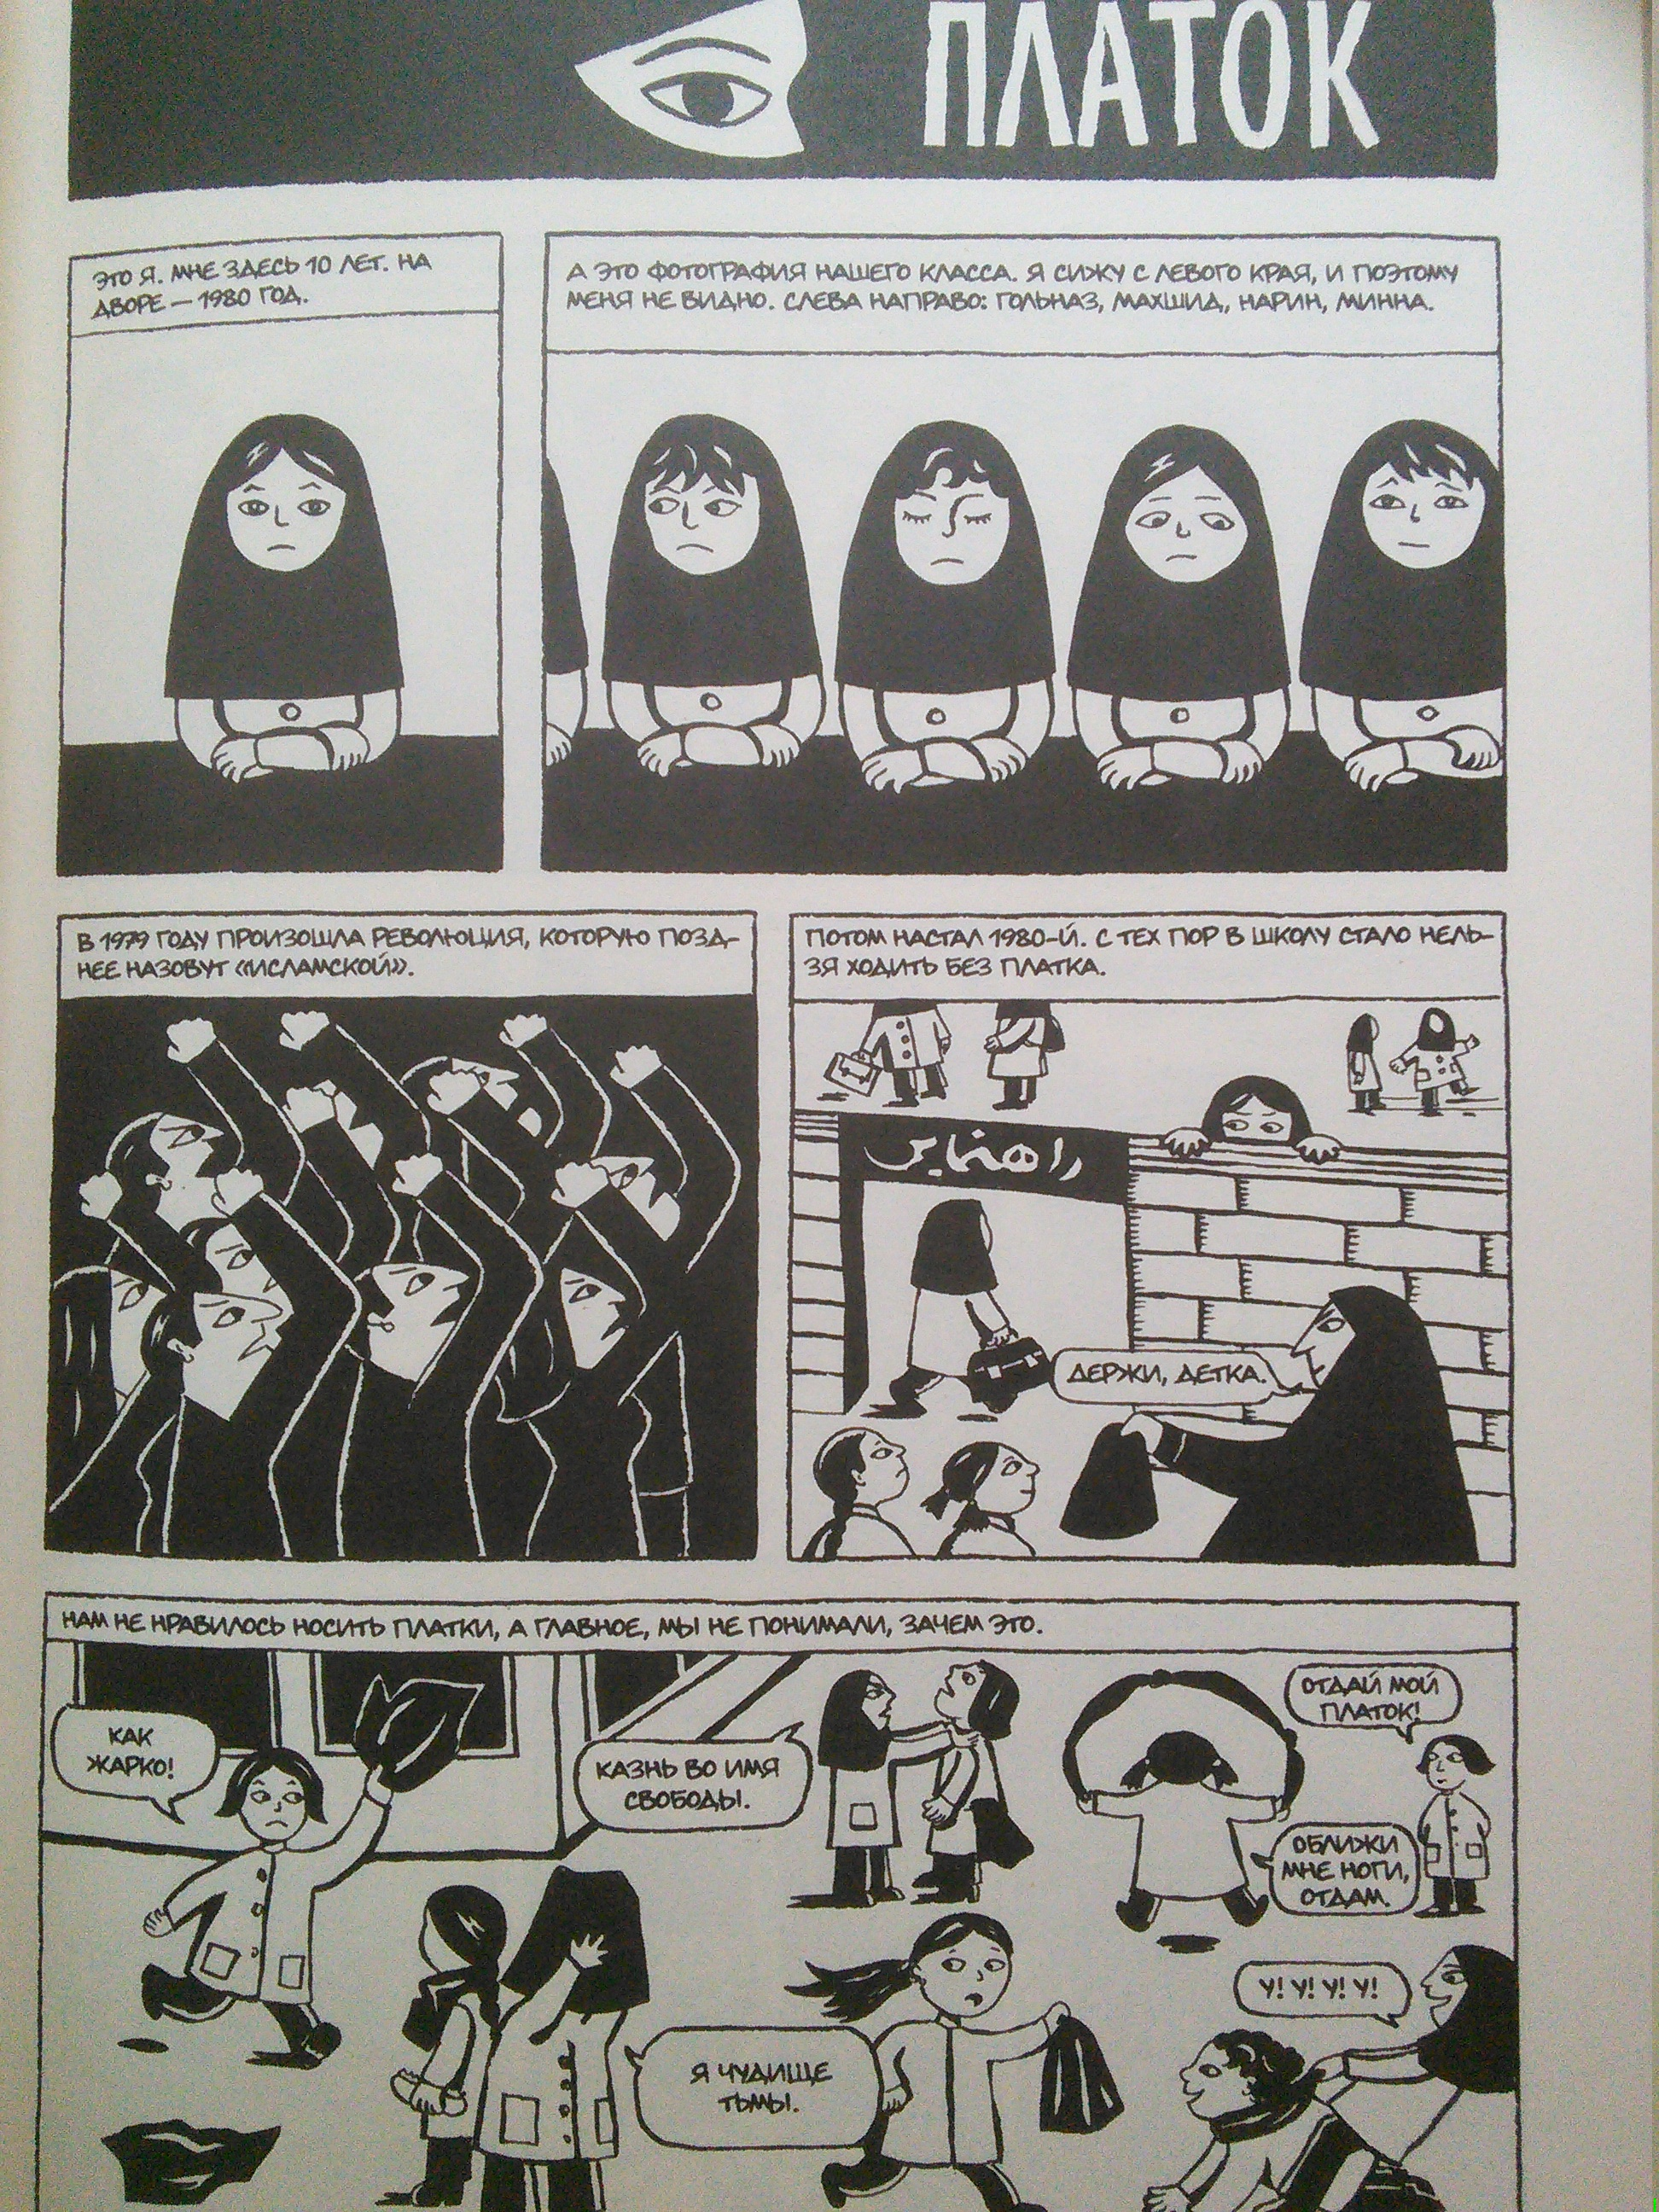 marjane satrapis persepolis essay Marjane satrapi's persepolis addresses important aspects of the western world and westernization which are reflected in this essay iran has struggled, and continues to do so, with the influence of the west on the country.